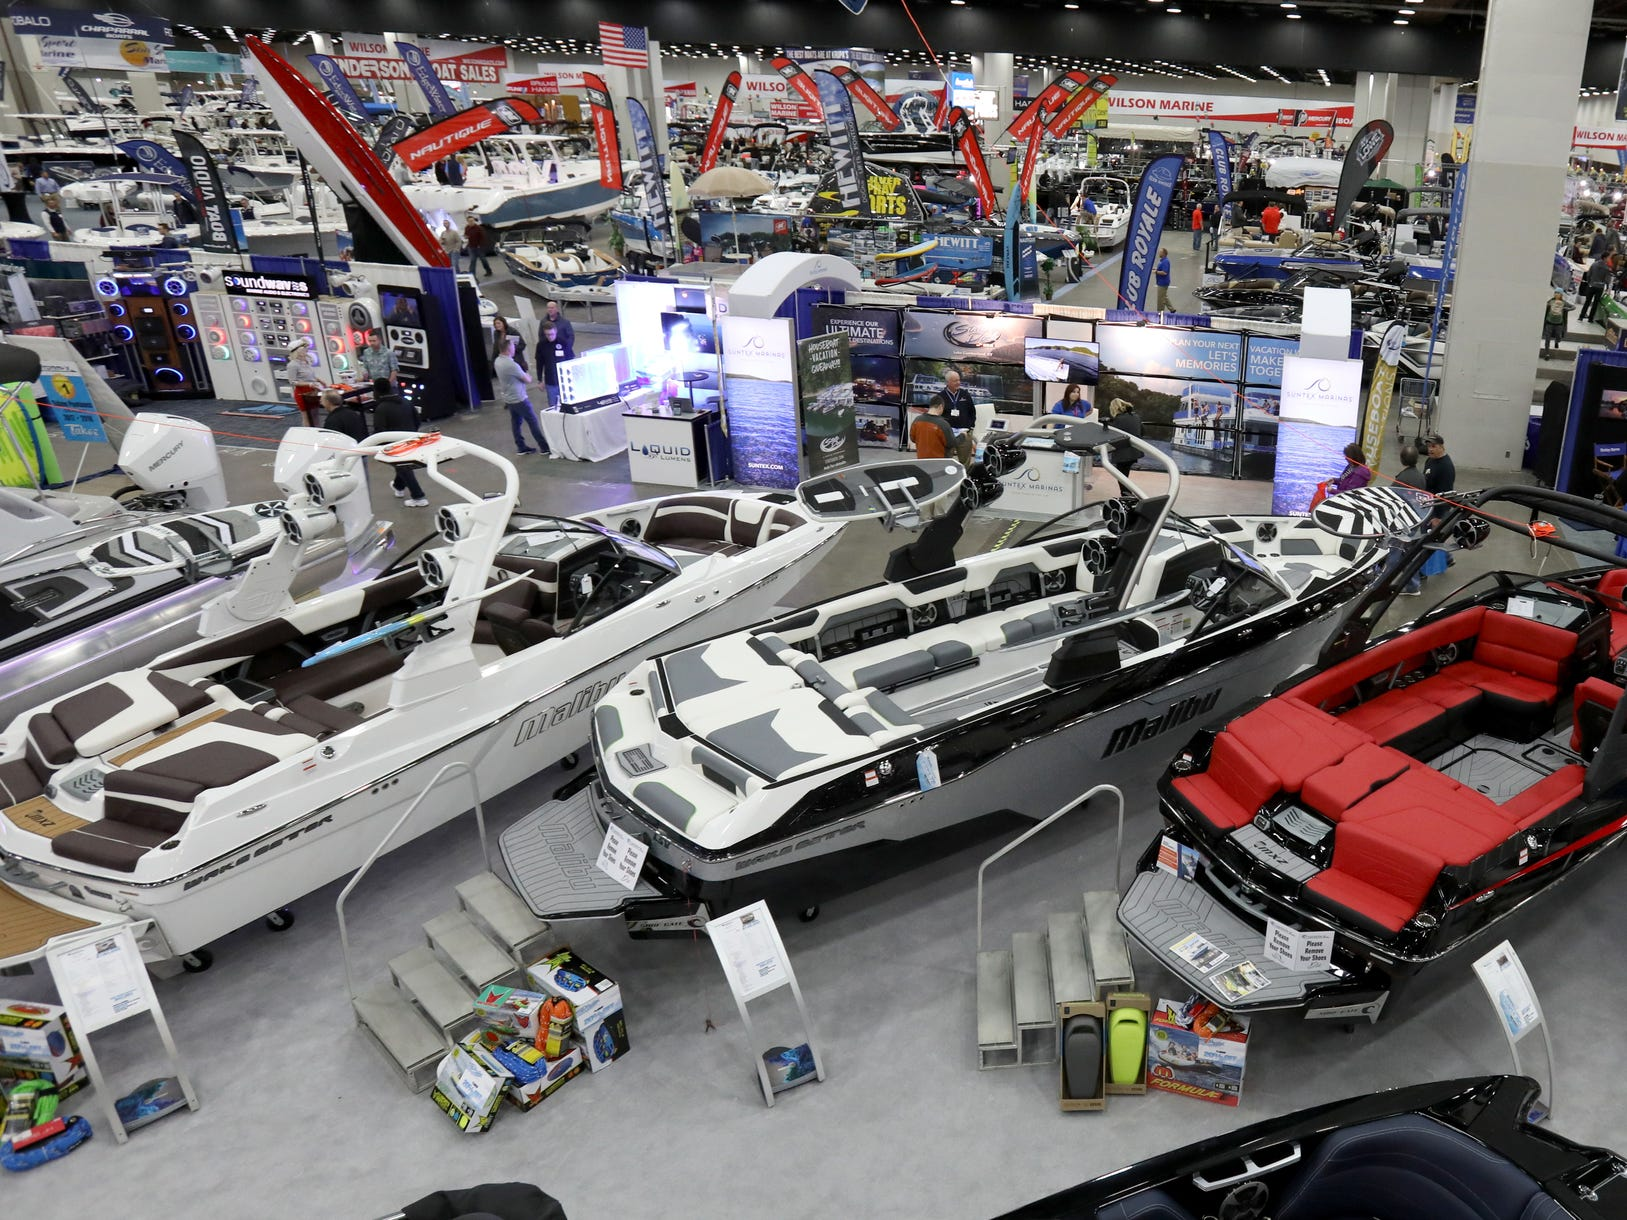 Boats took over the large convention floor space during the week long Detroit Boat Show at Cobo Center in Detroit on Saturday, February 16, 2019.